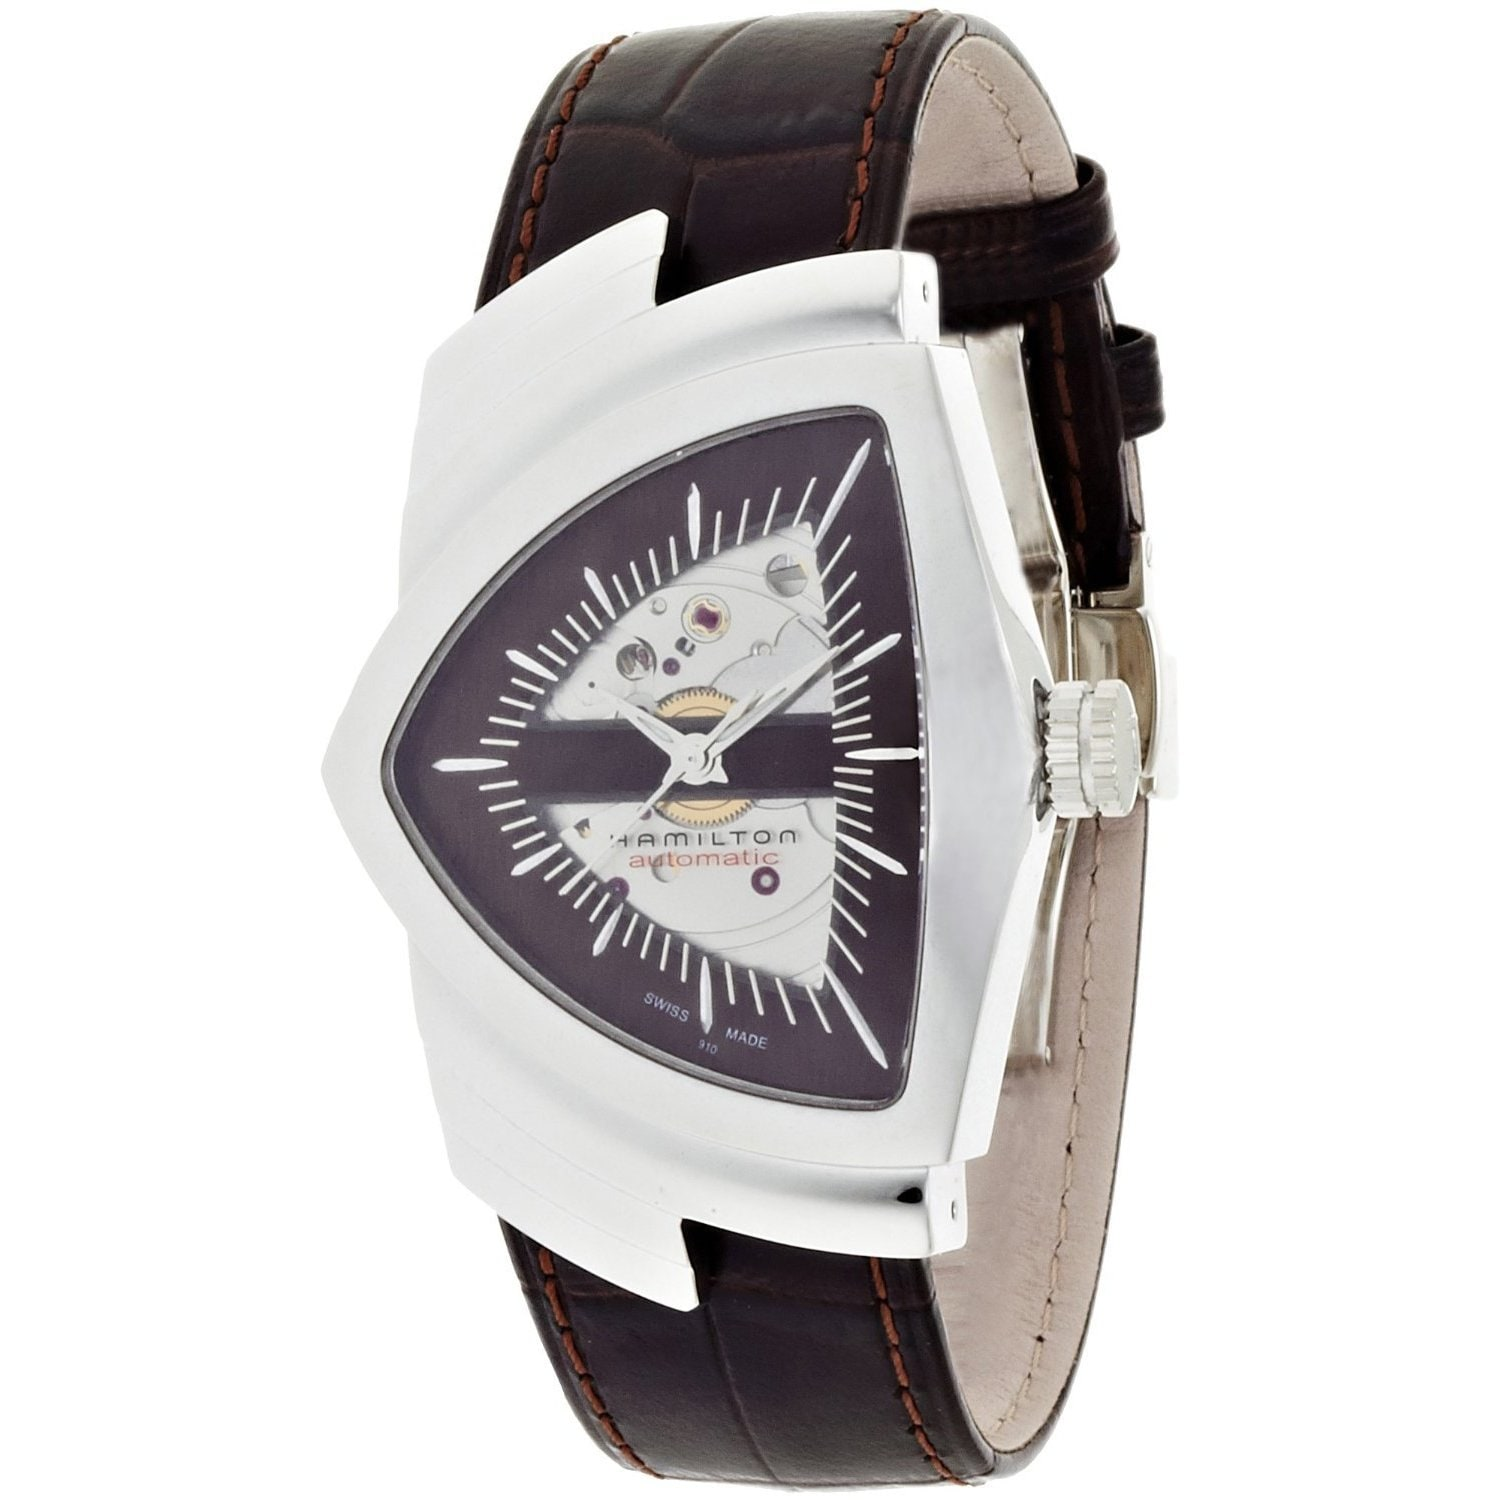 3acdc73db5e Shop Hamilton Men's Ventura Brown Leather Skeleton Watch - Free Shipping  Today - Overstock - 9521733